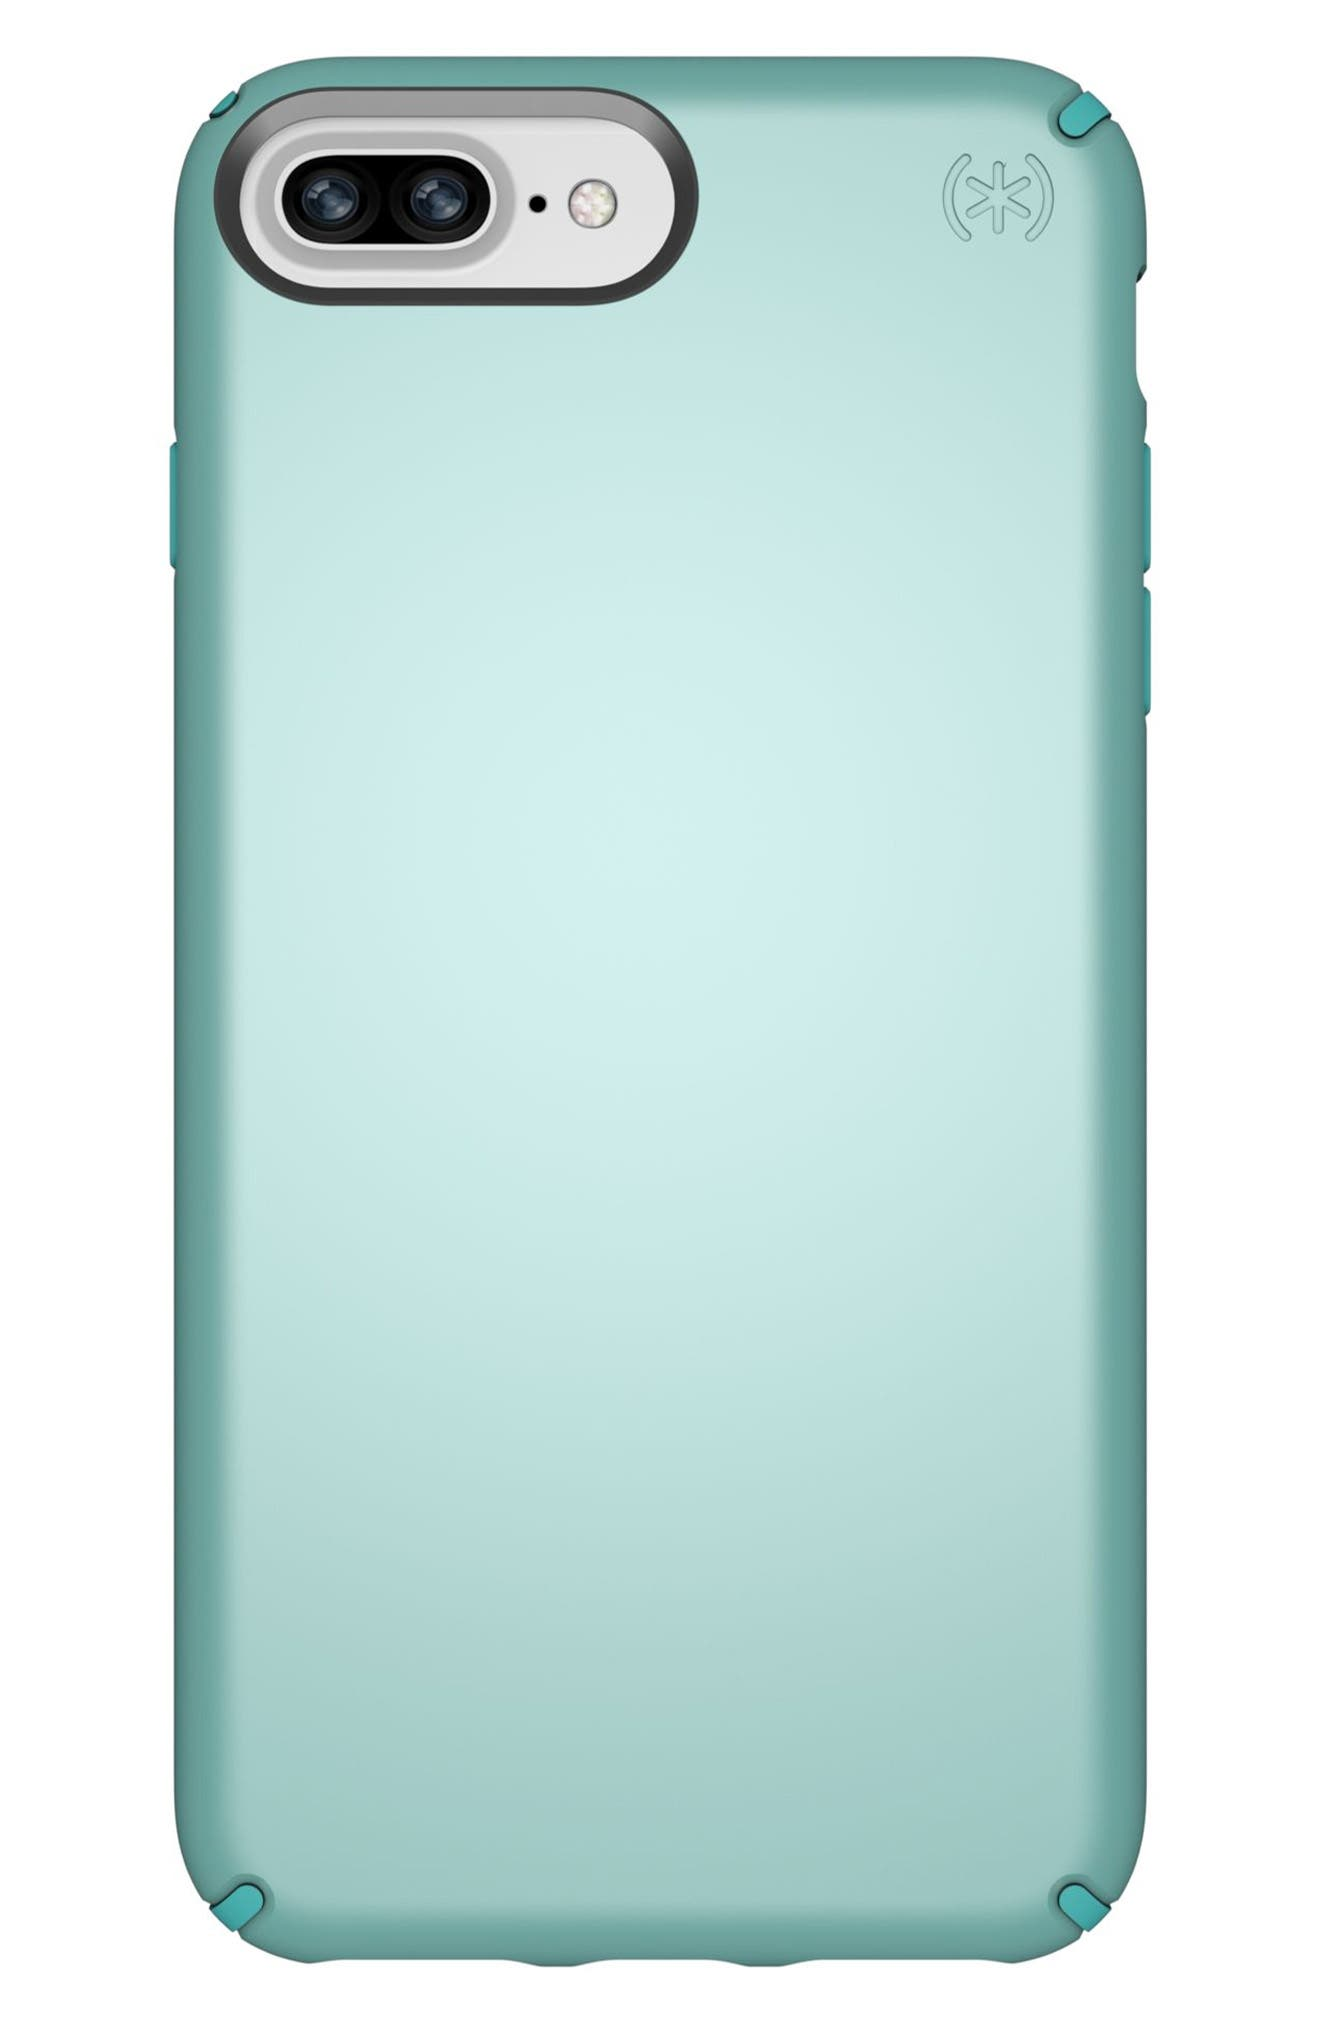 iPhone 6/6s/7/8 Plus Case,                             Main thumbnail 1, color,                             PEPPERMINT GREEN/ TEAL